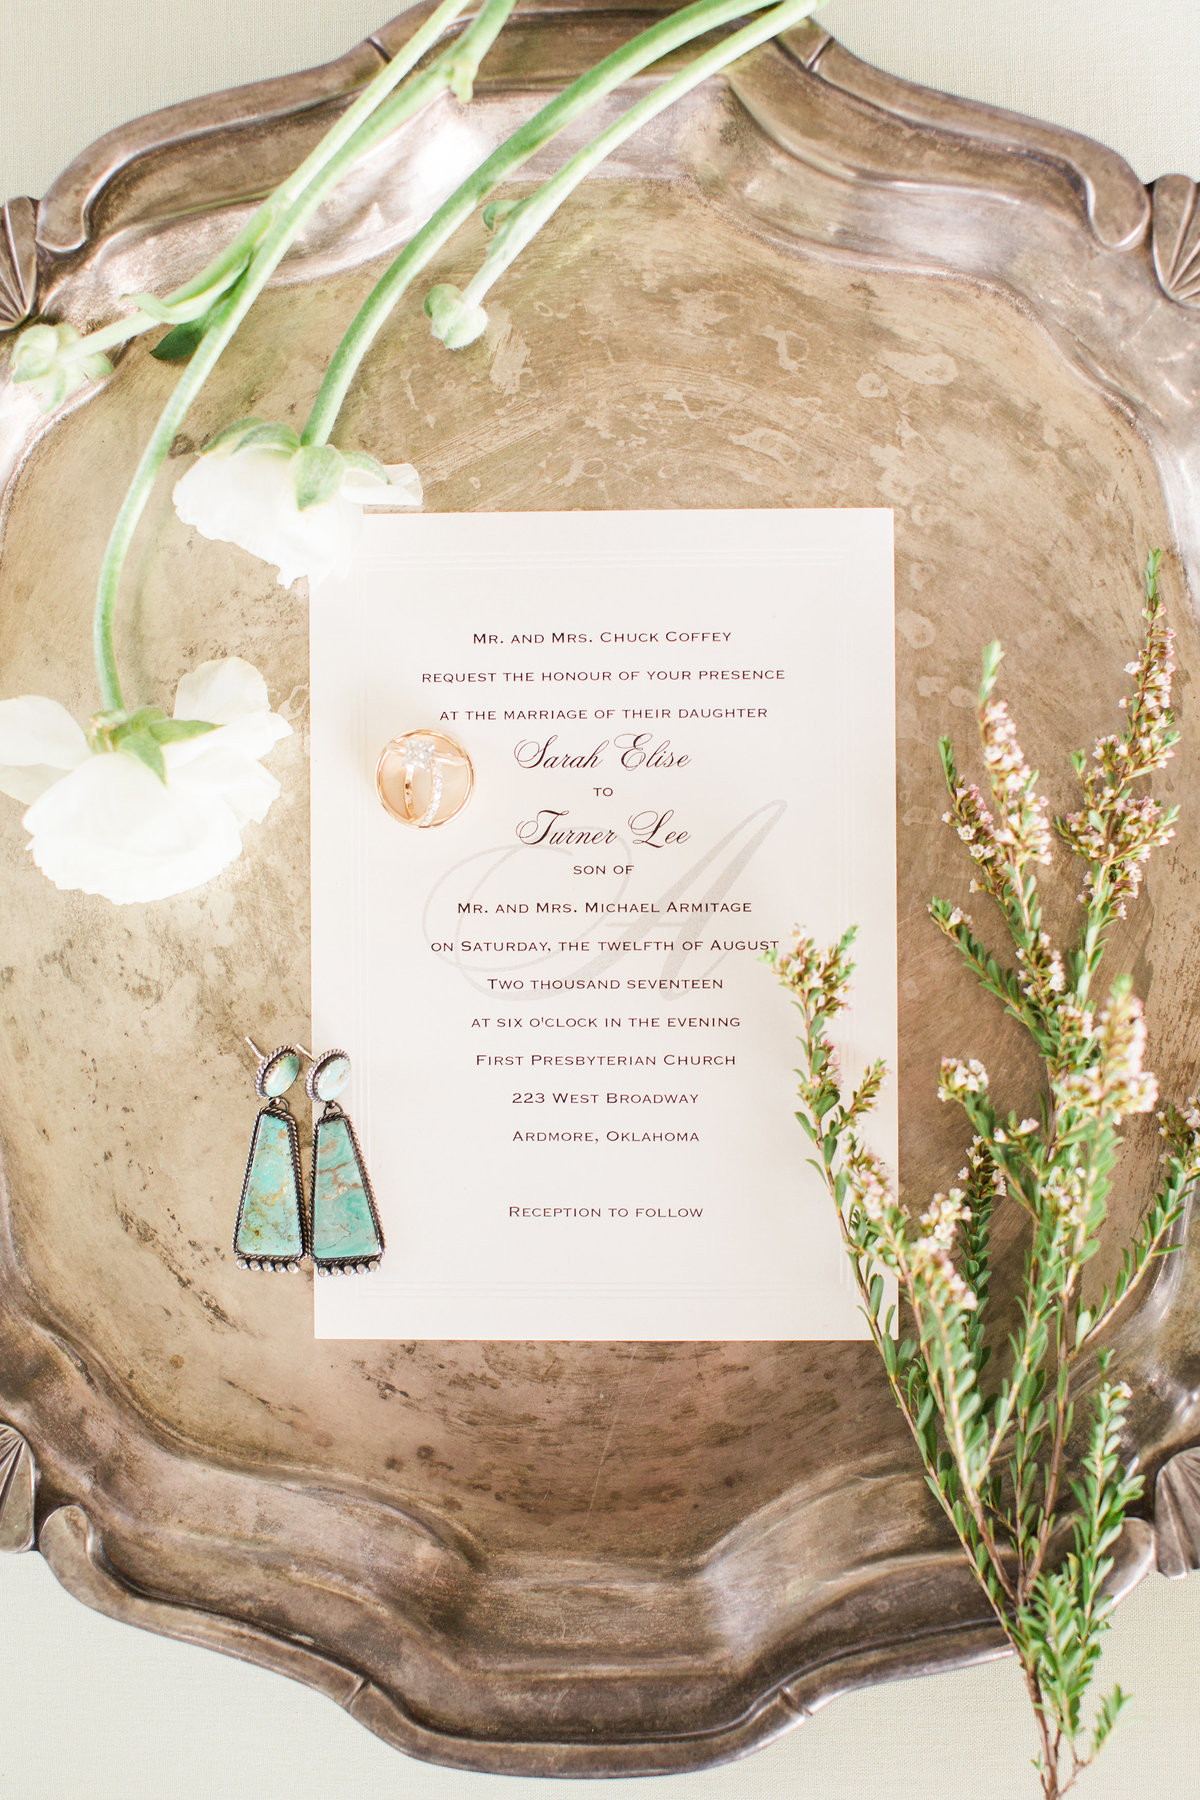 Ardmore Convention Center Wedding Invitations